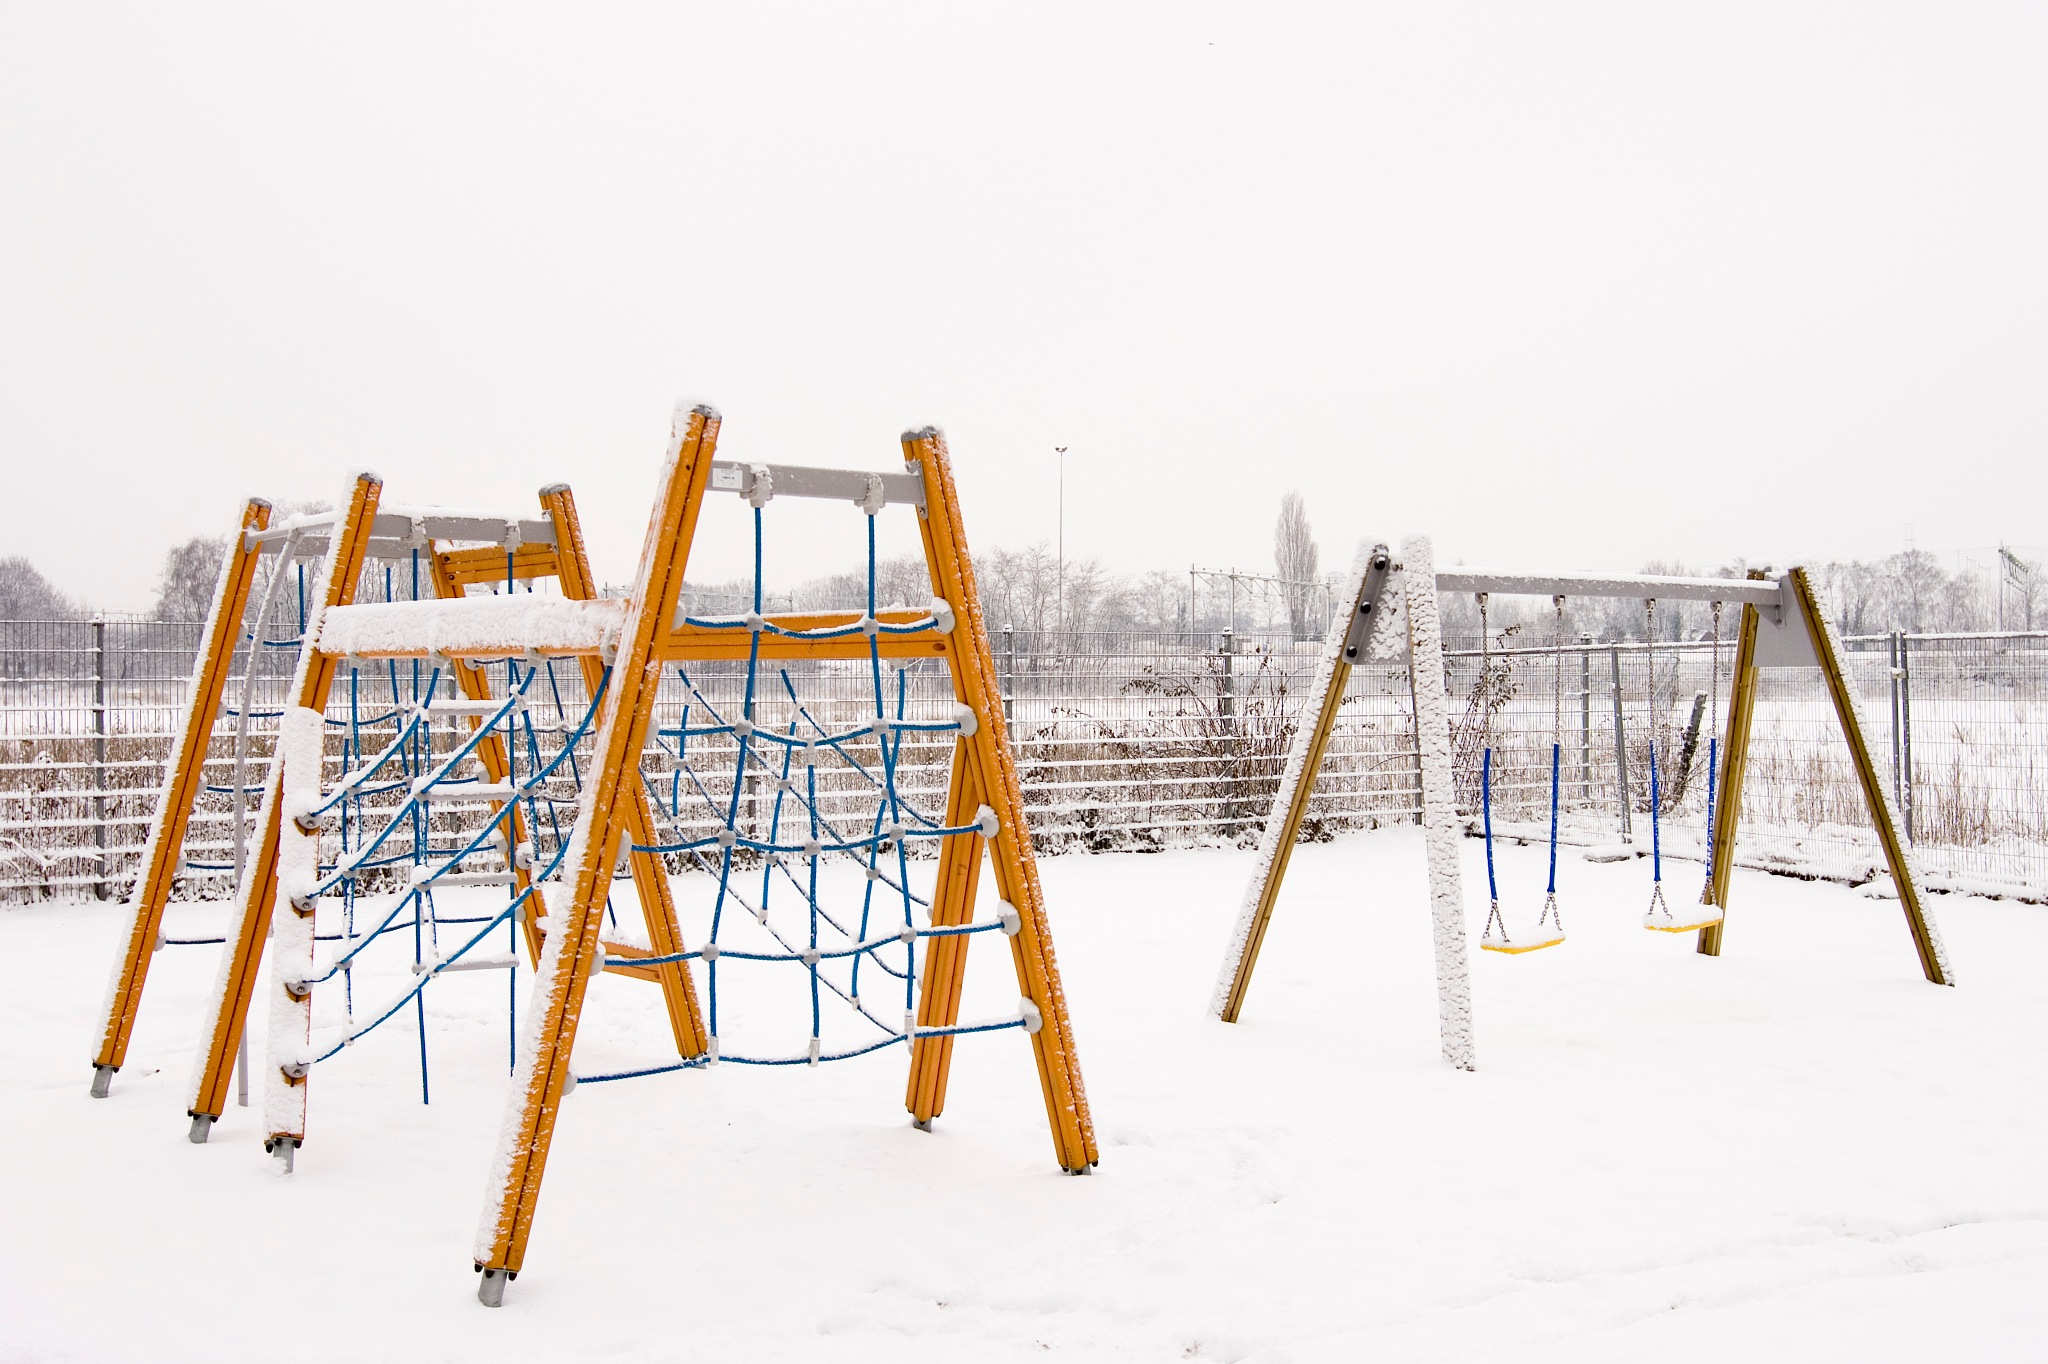 Playground in the snow by Helga Kuiper